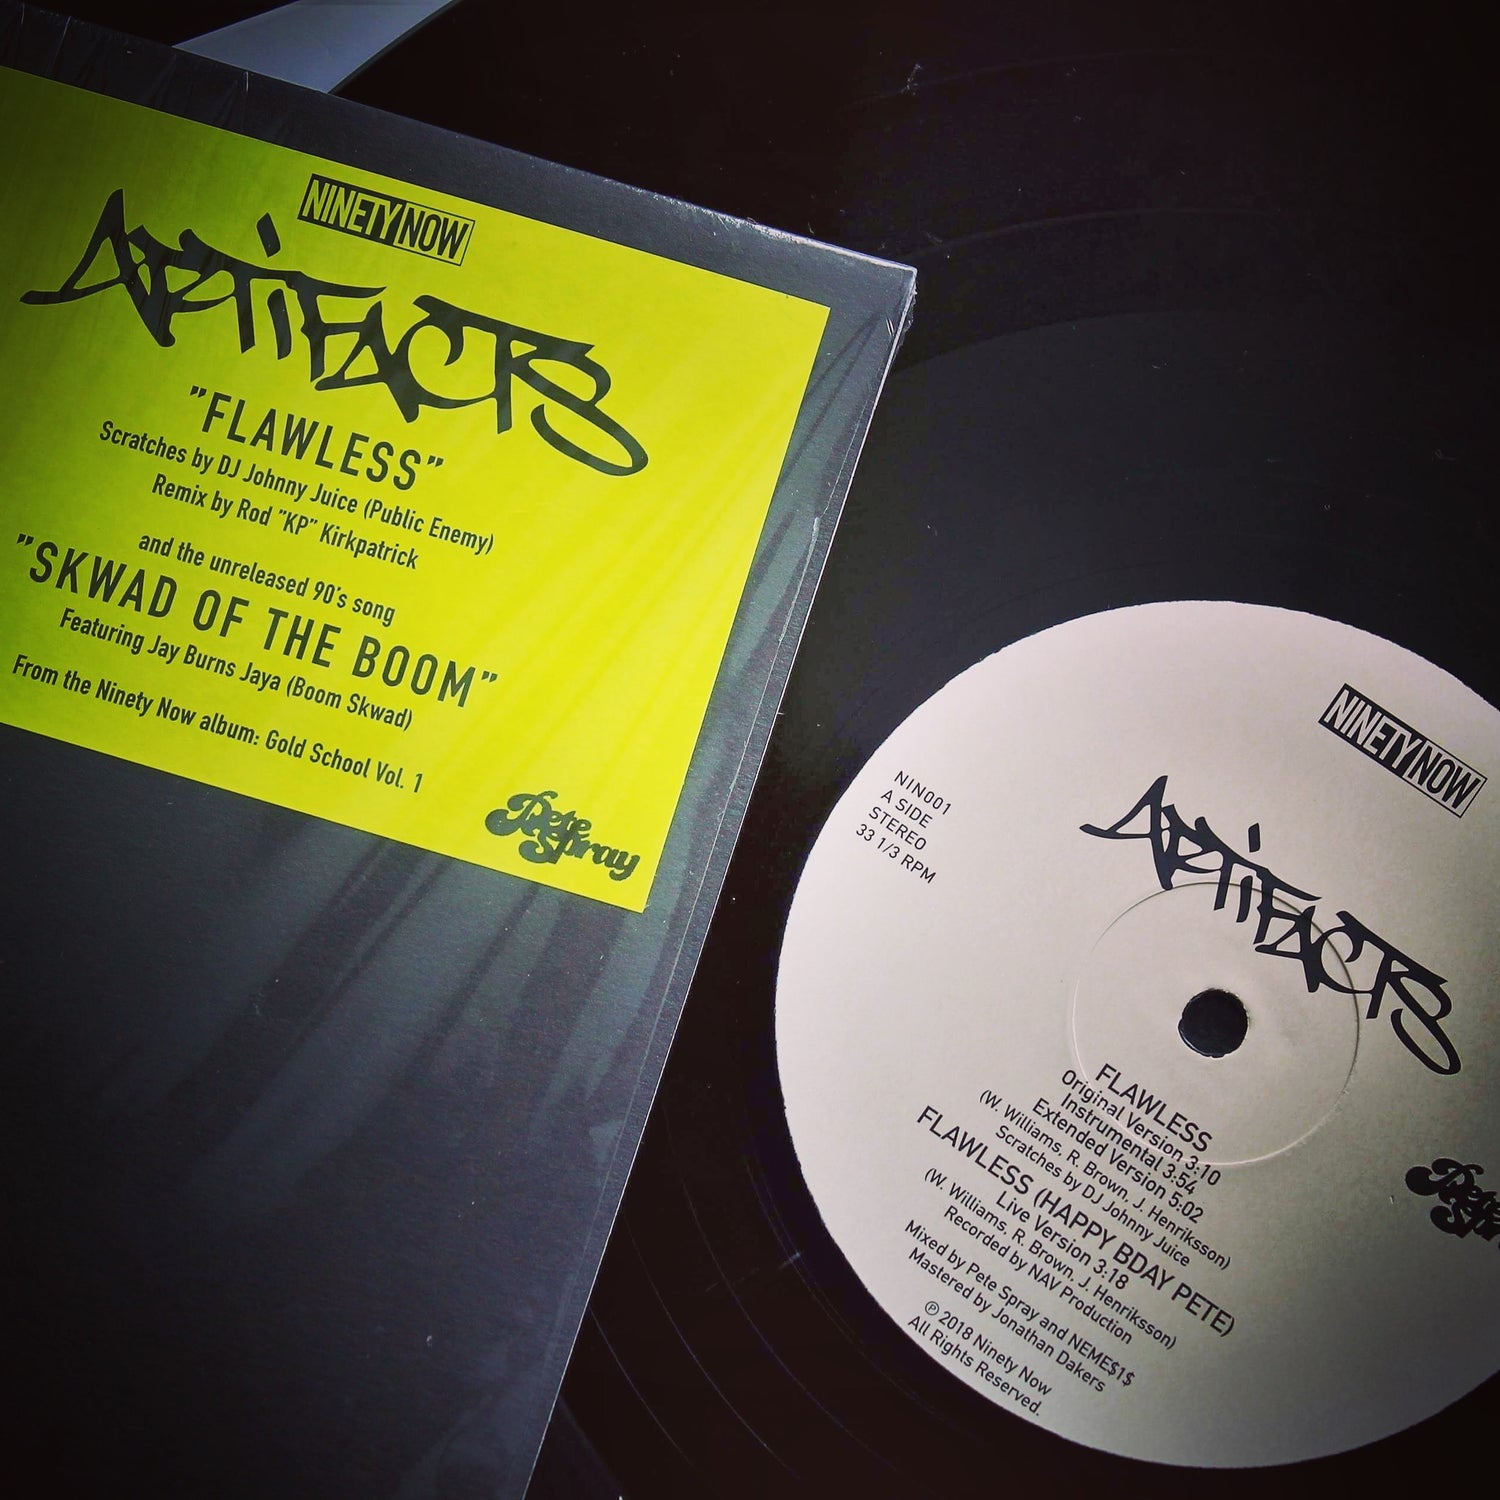 "Image of Ninety Now presents Artifacts ""Flawless"" b/w ""Skwad of the Boom"" 12-inch"